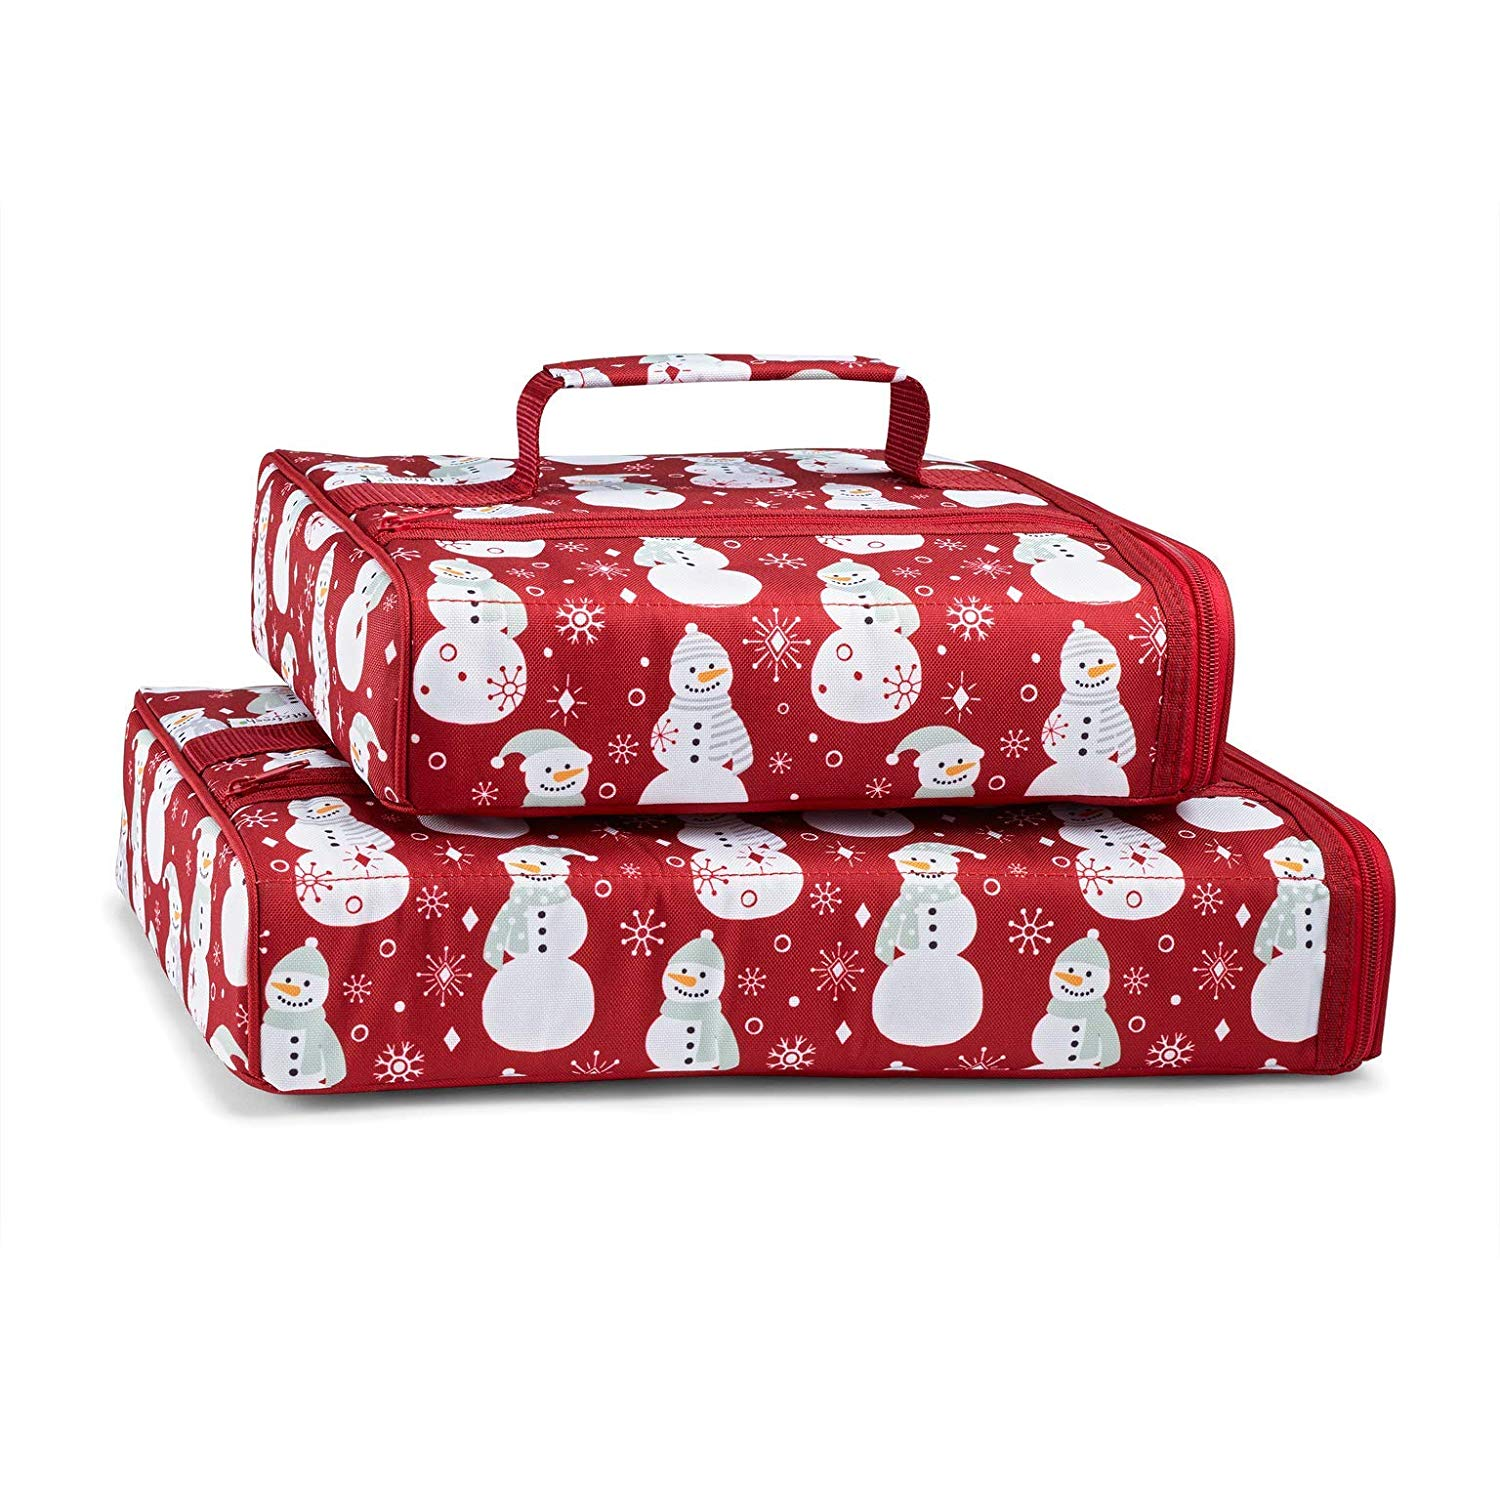 Scarlet Snowman Set of 2 Casserole Carriers